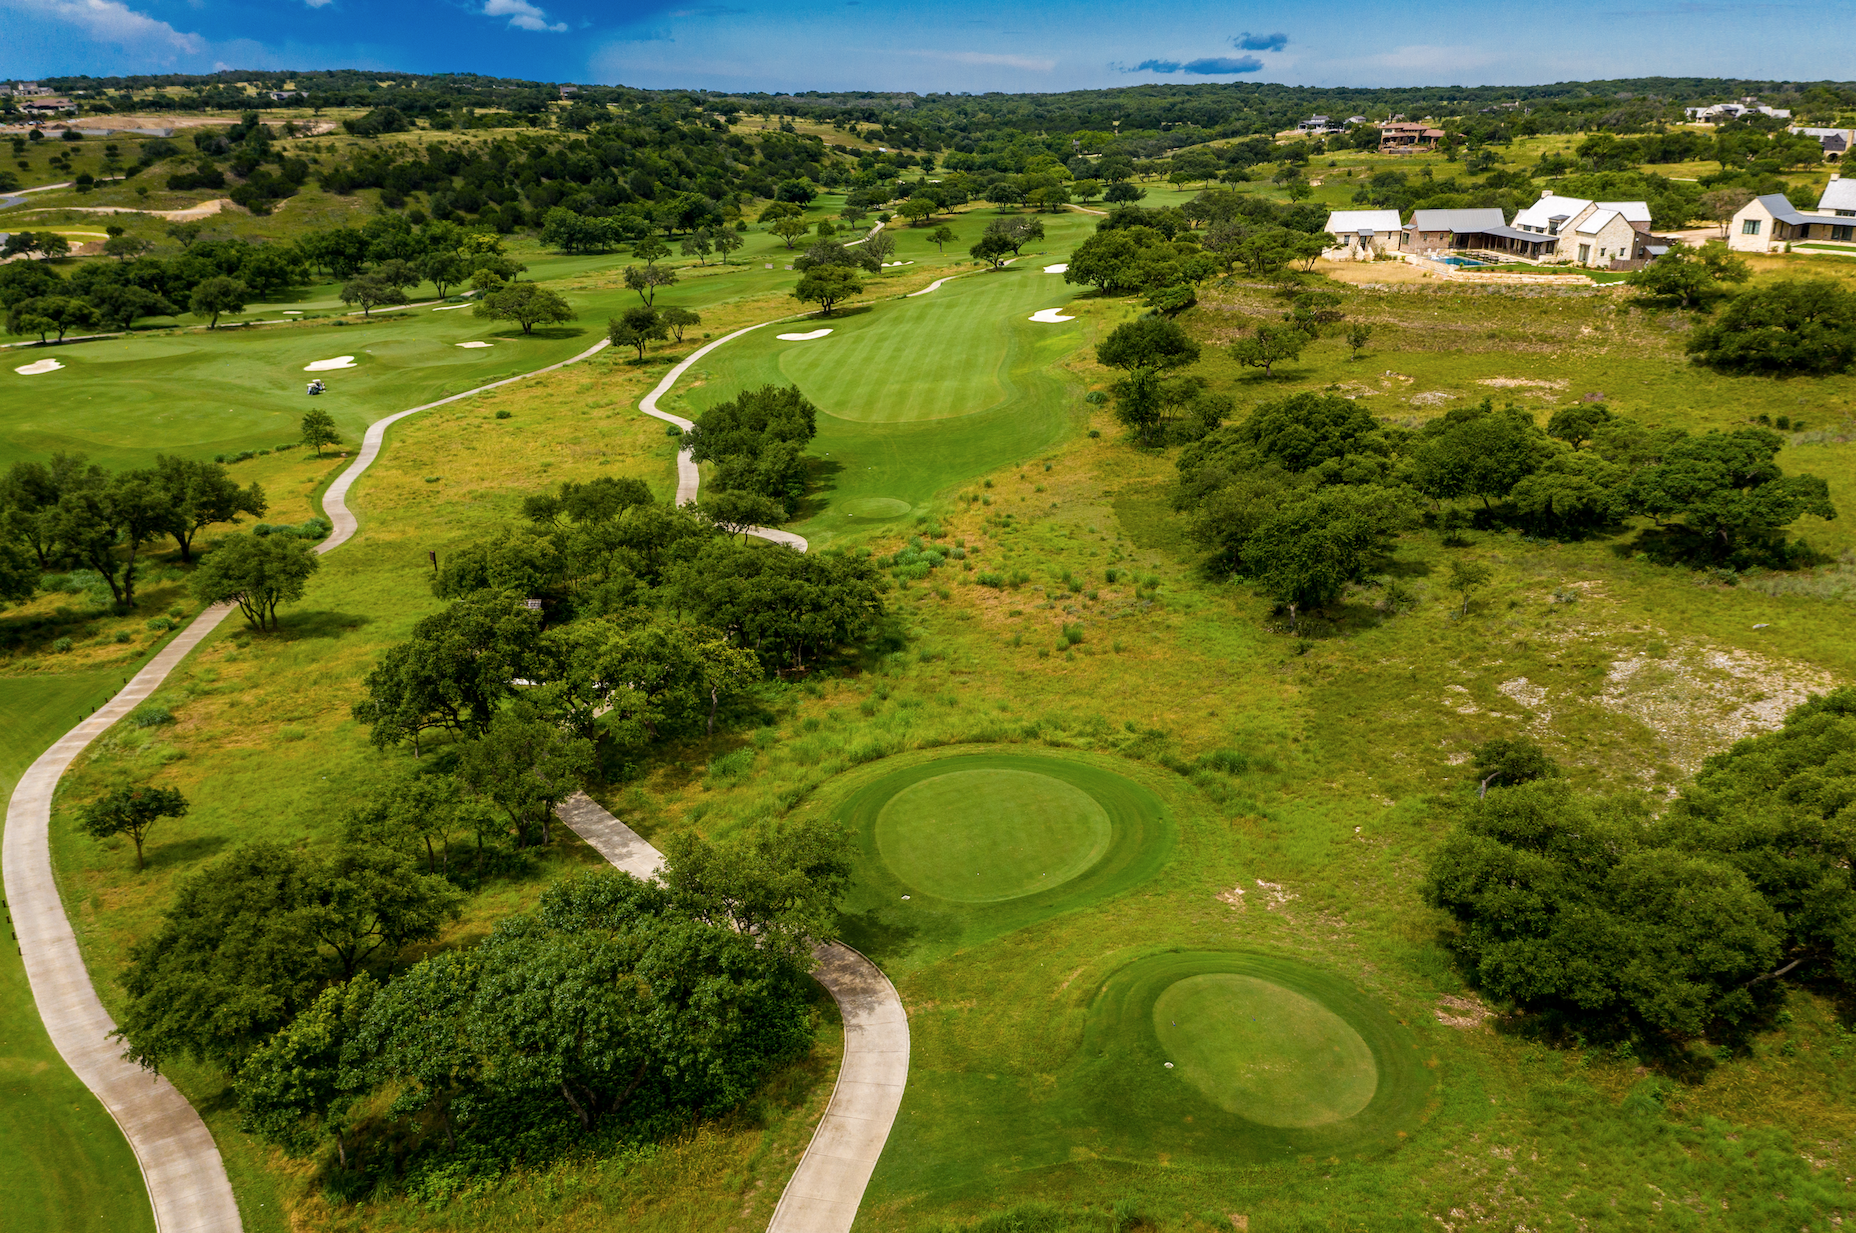 Private Club Community Texas Hill Country Homesteads Boot Ranch Texas Homes For Sale Texas Hill Country Hill Country Homes